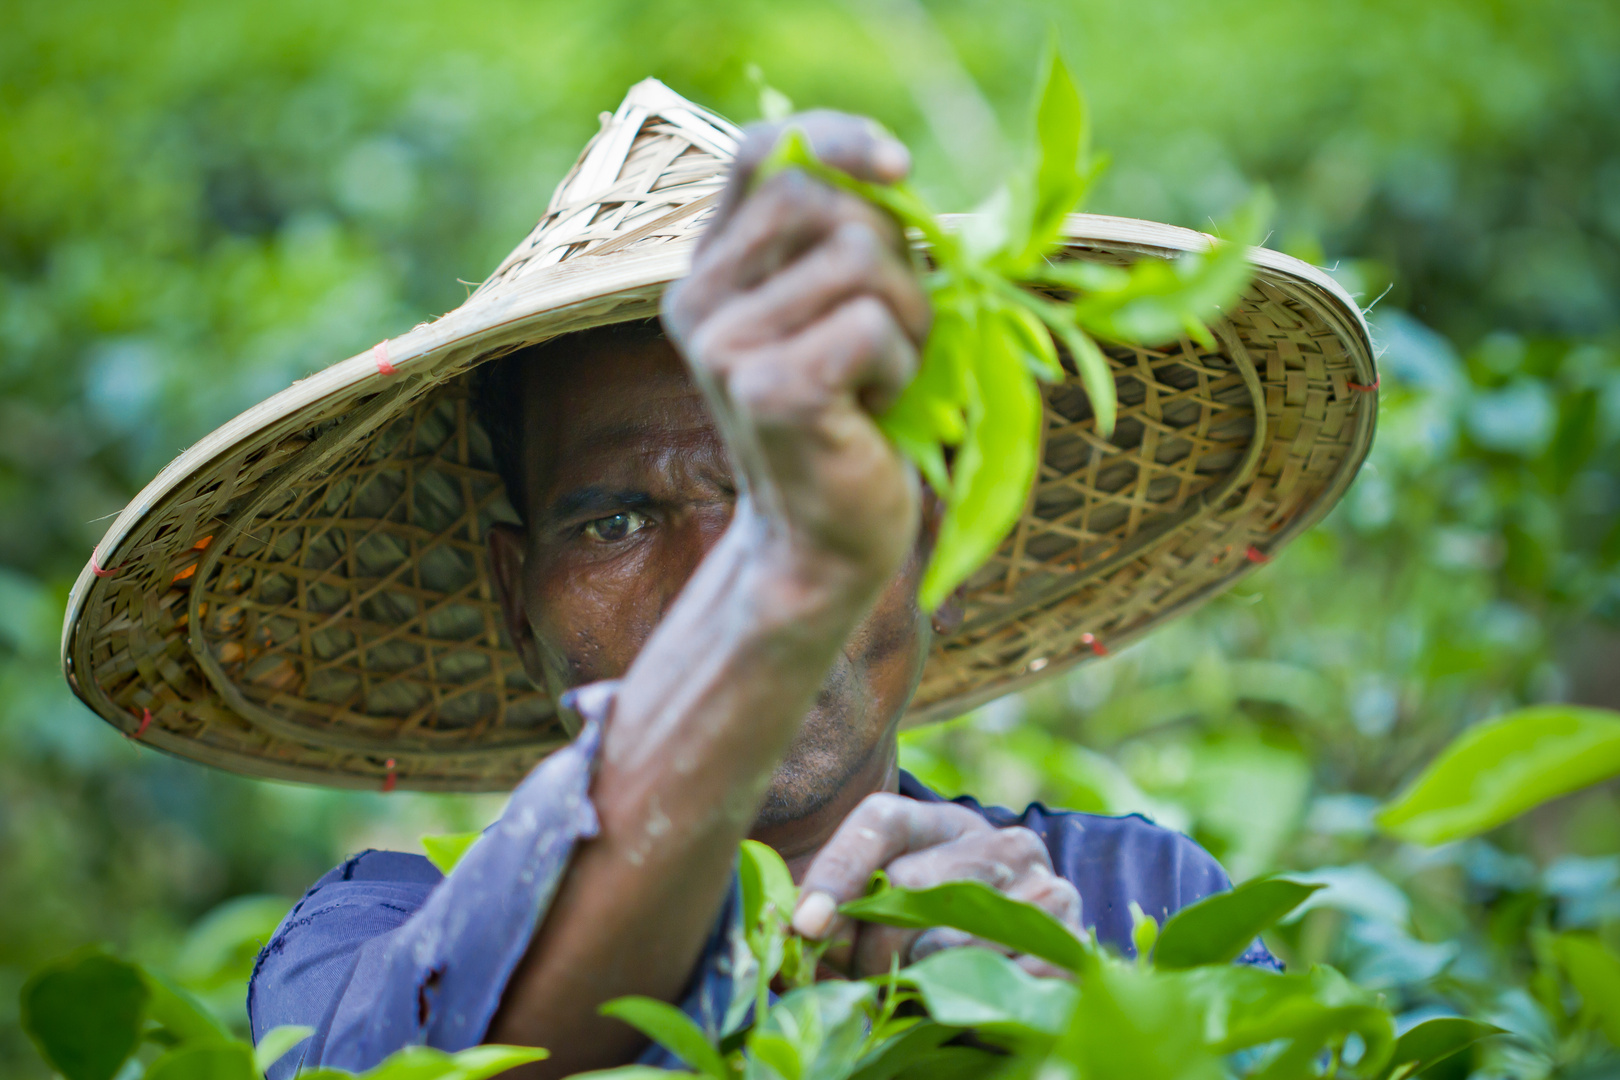 A Tea plantation Worker closeup.